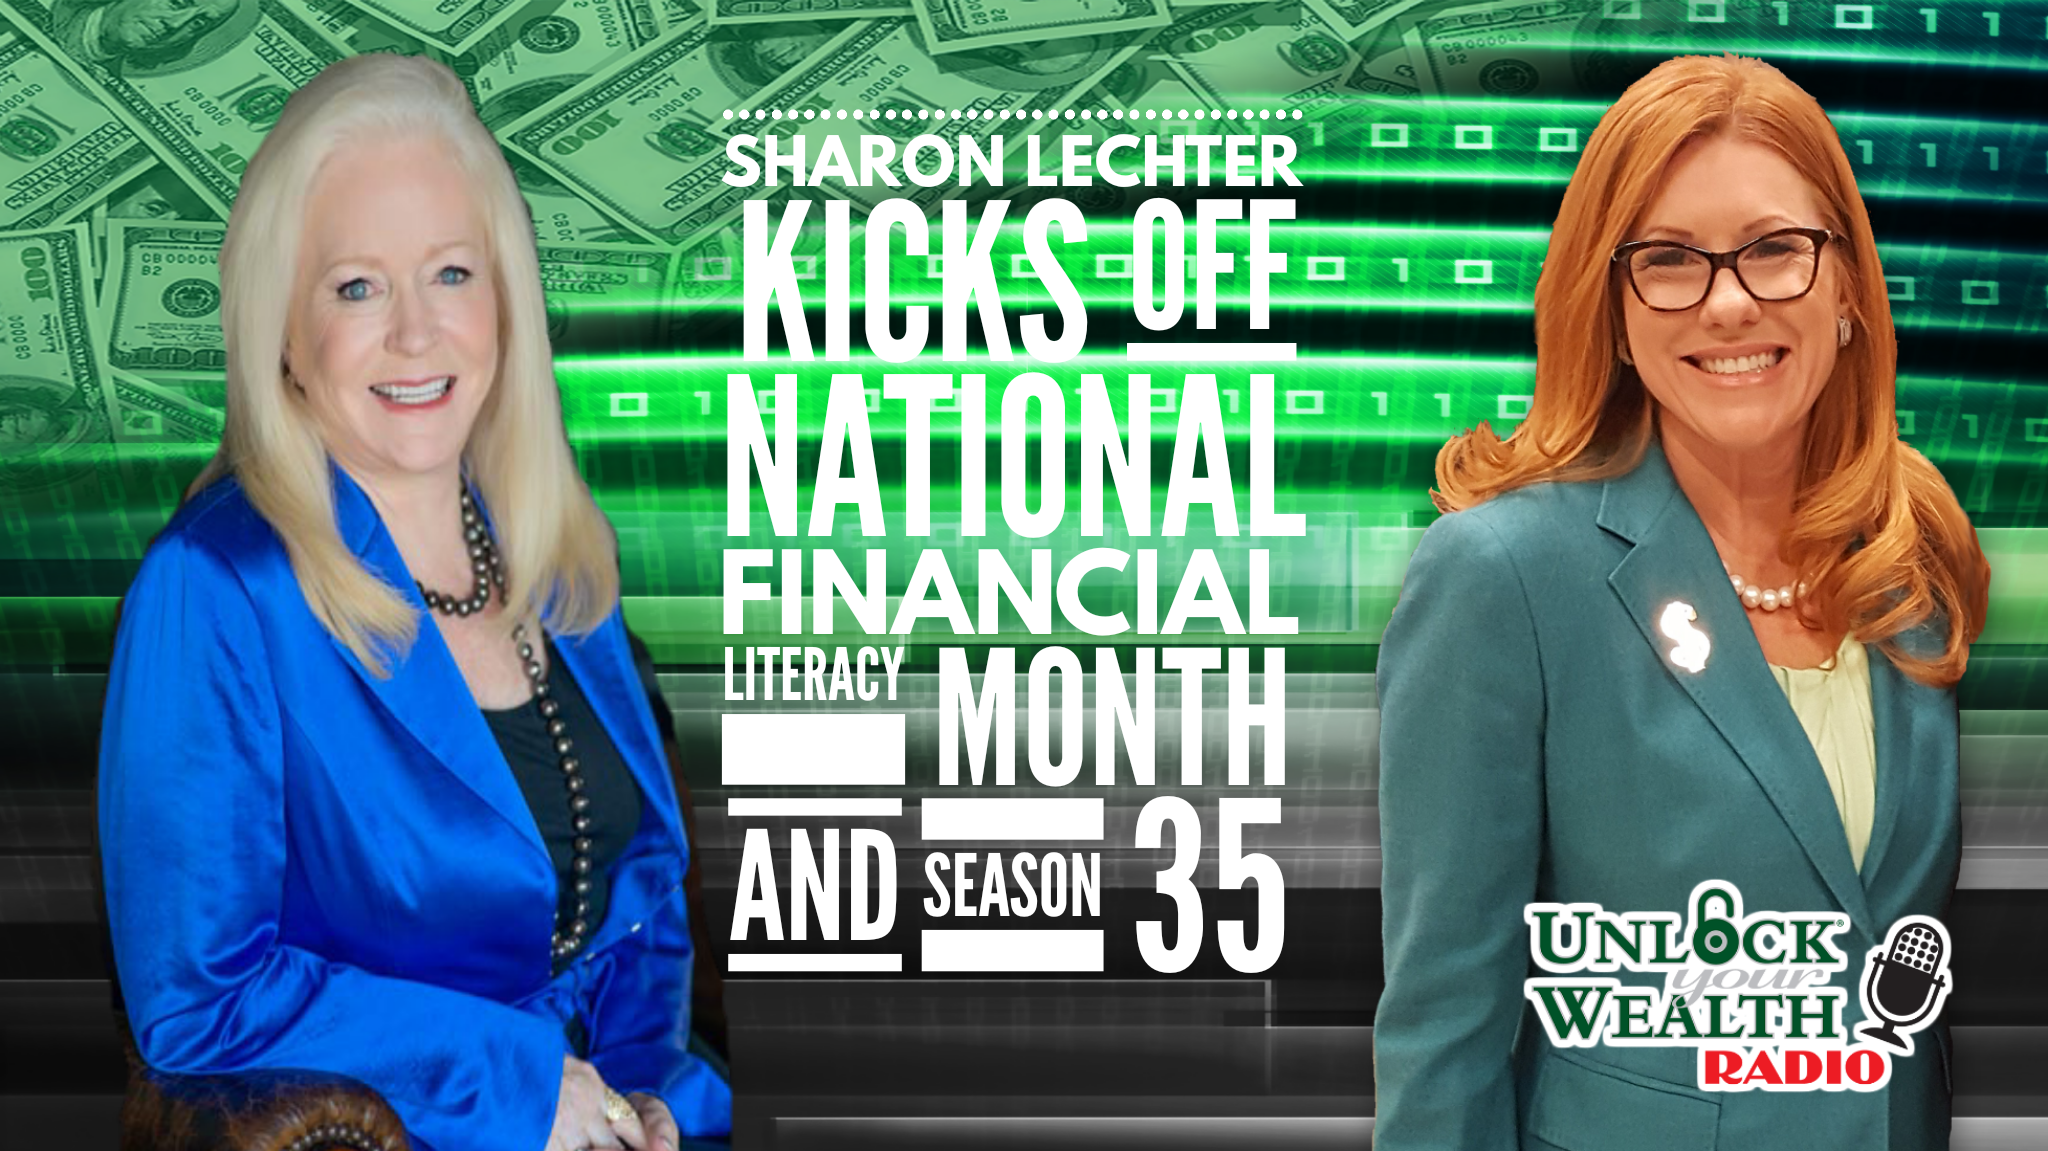 Sharon Lechter, Think and Grow Rich for Women Best-Selling Author Celebrates National Financial Literacy Month and Season 35 of Unlock Your Wealth Radio Starring Heather Wagenhals